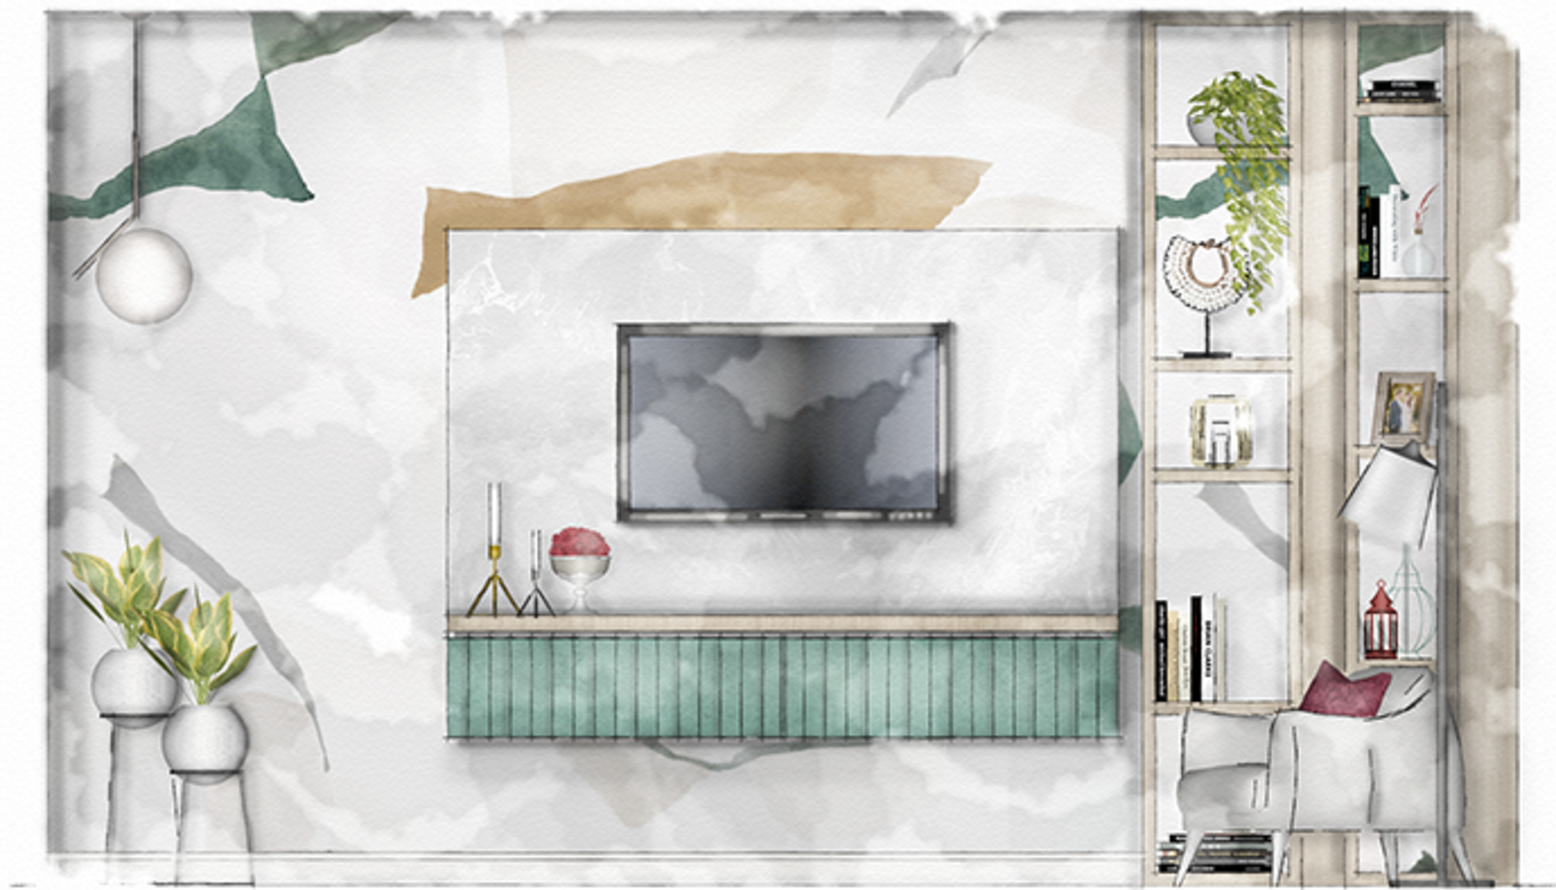 A 2D elevation featuring the custom made shelving and TV Unit